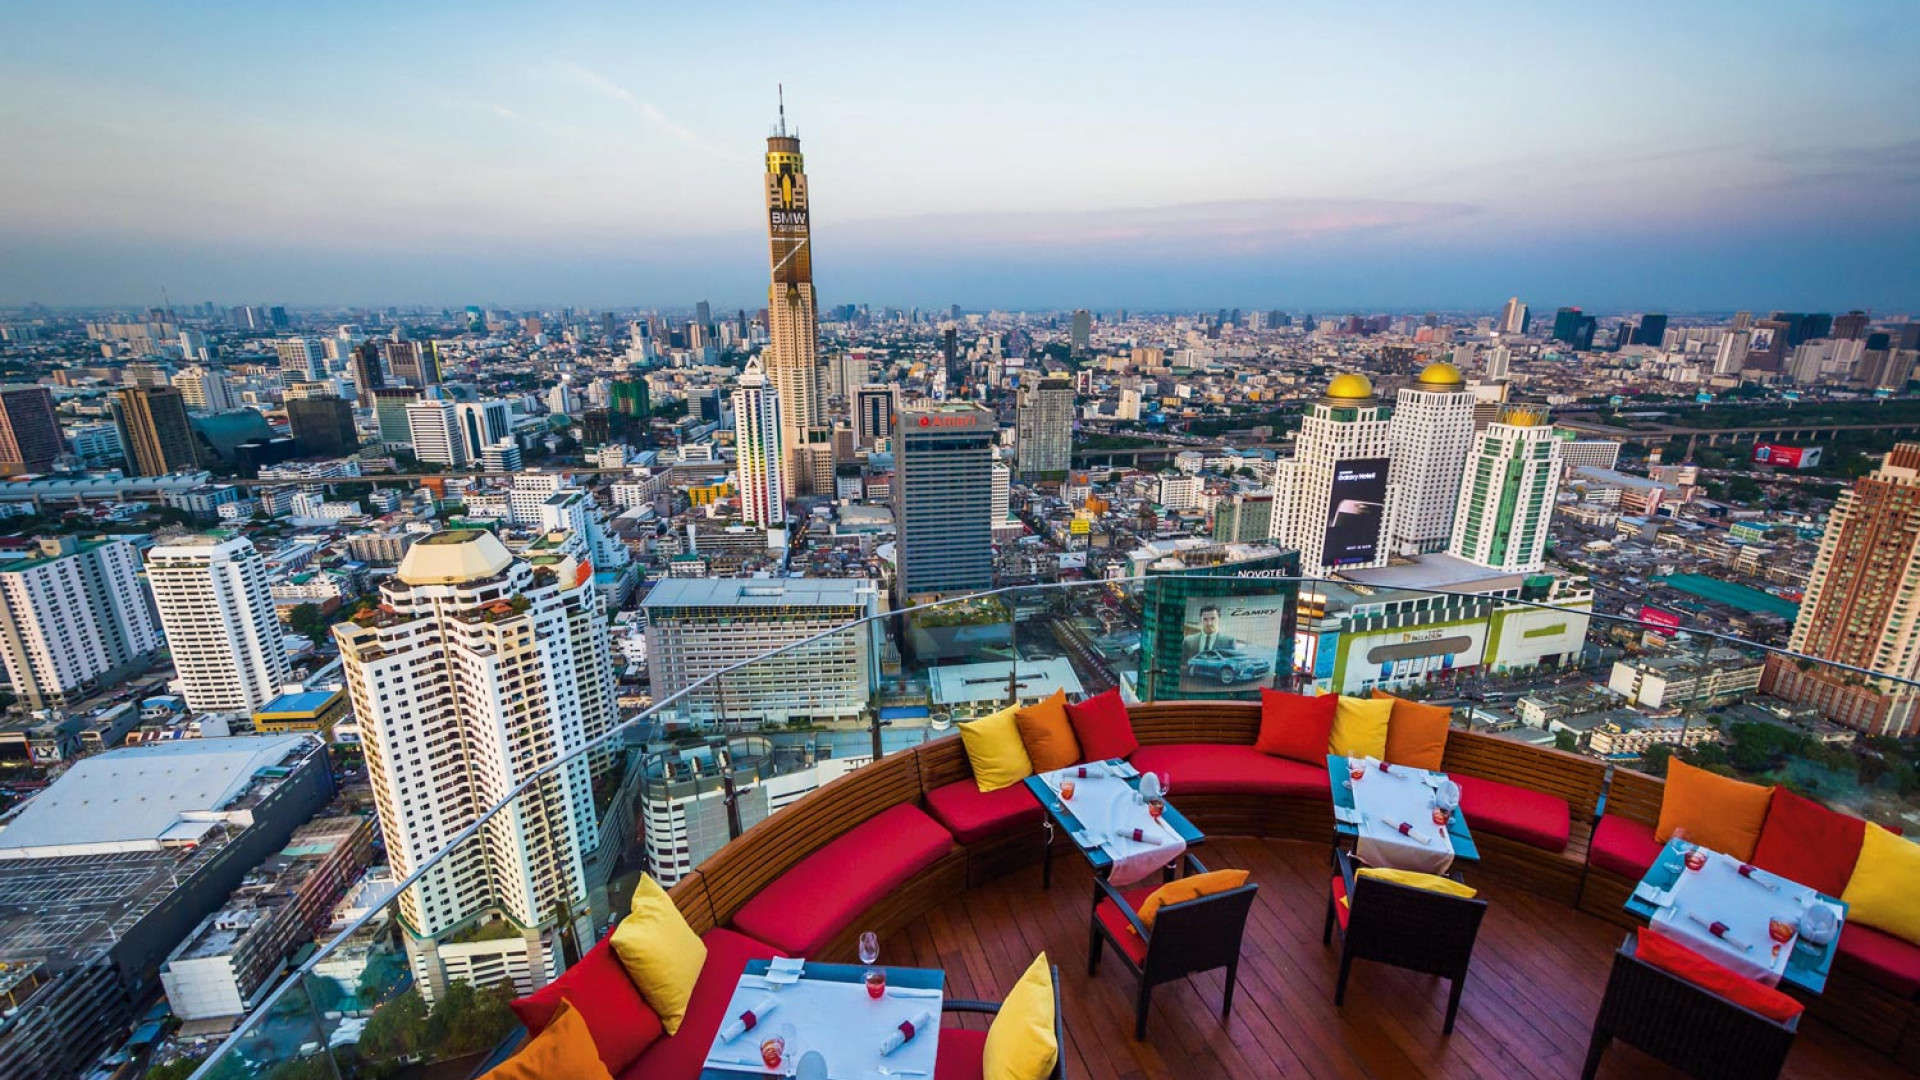 Rooftop bar overlooking the Bangkok skyline in Thailand